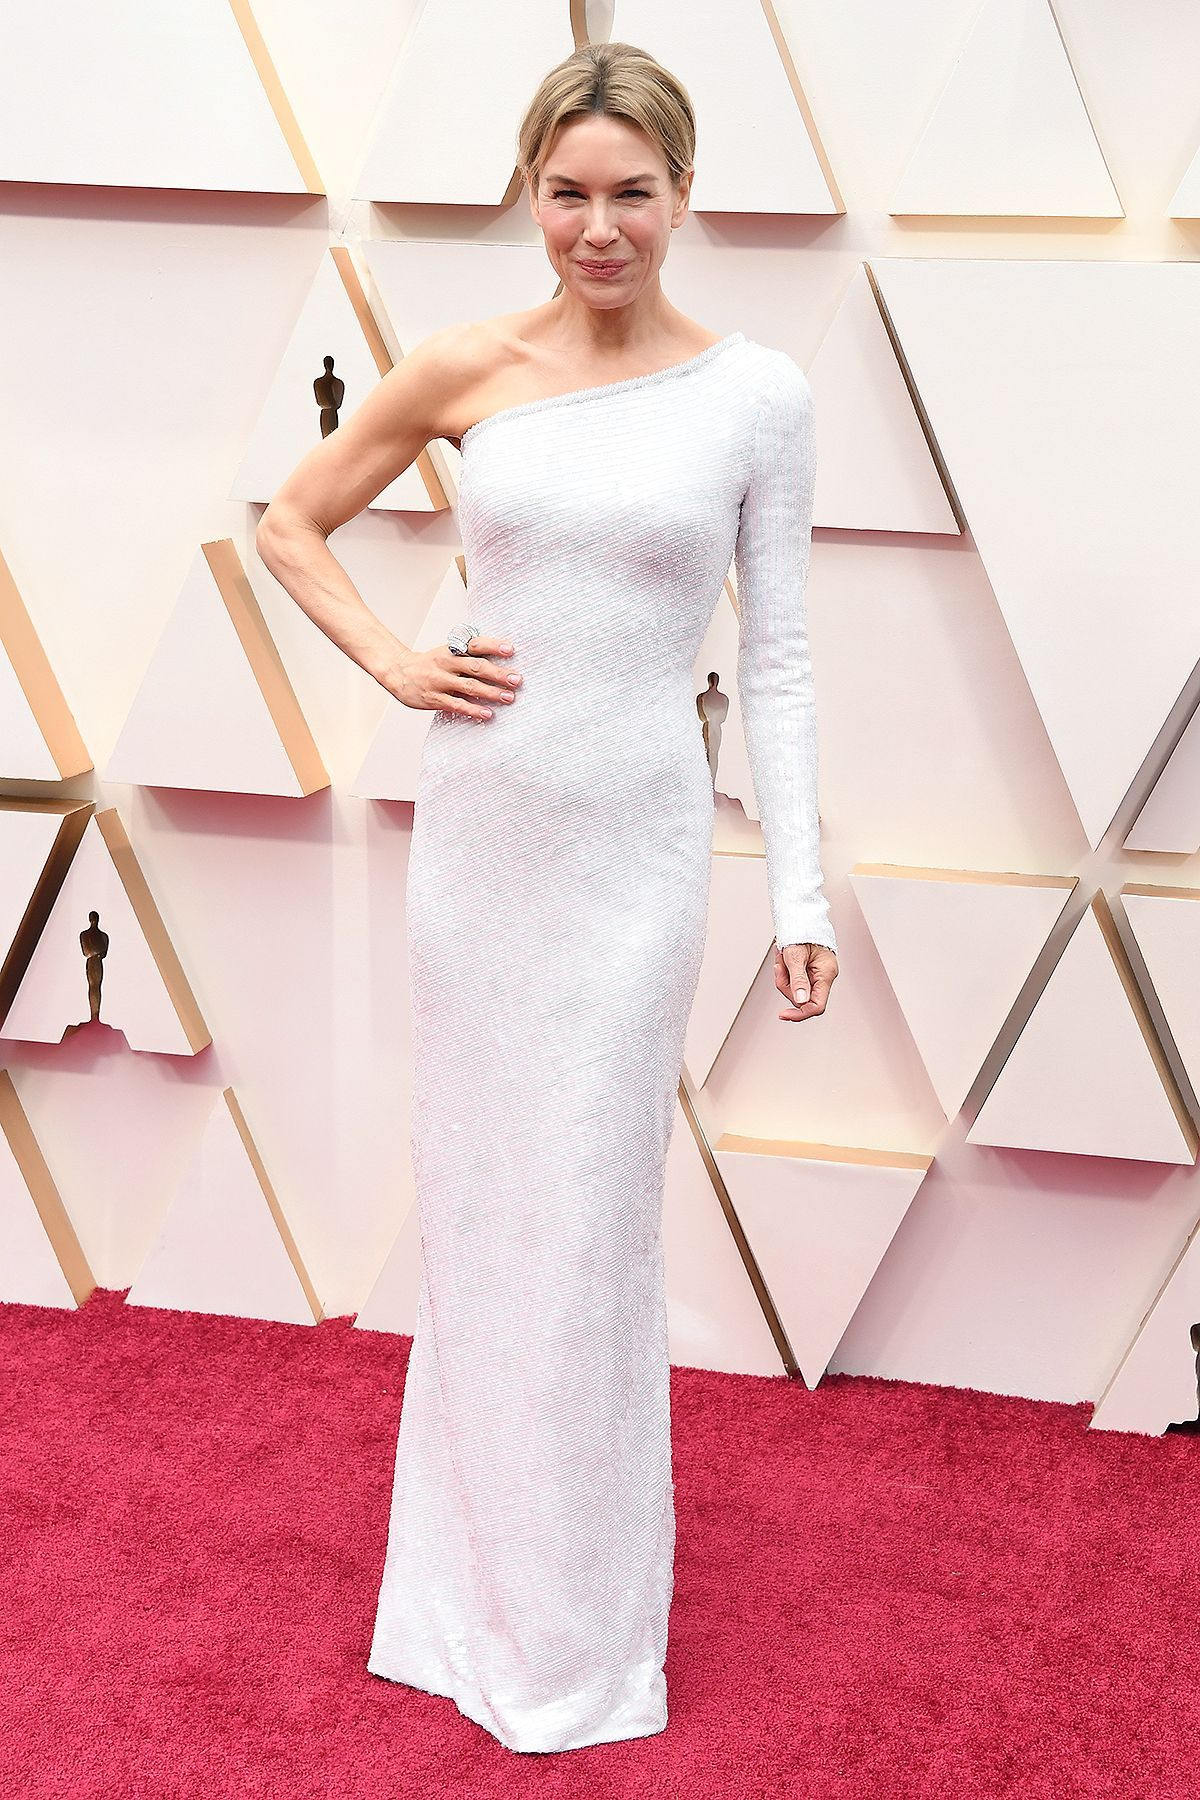 See all the stars on the Oscars red carpet -  Oscars 2020: See all the stars on the red carpet  - #AlexaChung #AngelaSimmons #CannesFilmFestival #Carpet #CelebritiesFashion #CelebrityStyle #CurvyPetiteFashion #DianeKruger #EmmaRoberts #FashionDesigners #FashionTrends #KendallJennerOutfits #KimKardashian #LouisVuitton #LouisVuittonHandbags #LouisVuittonMonogram #LvHandbags #MichaelKorsBag #MiraDuma #MiroslavaDuma #Oscars #RachelBilson #RayBanOutlet #RayBanSunglasses #RayBans #Red #RedCarpetDress